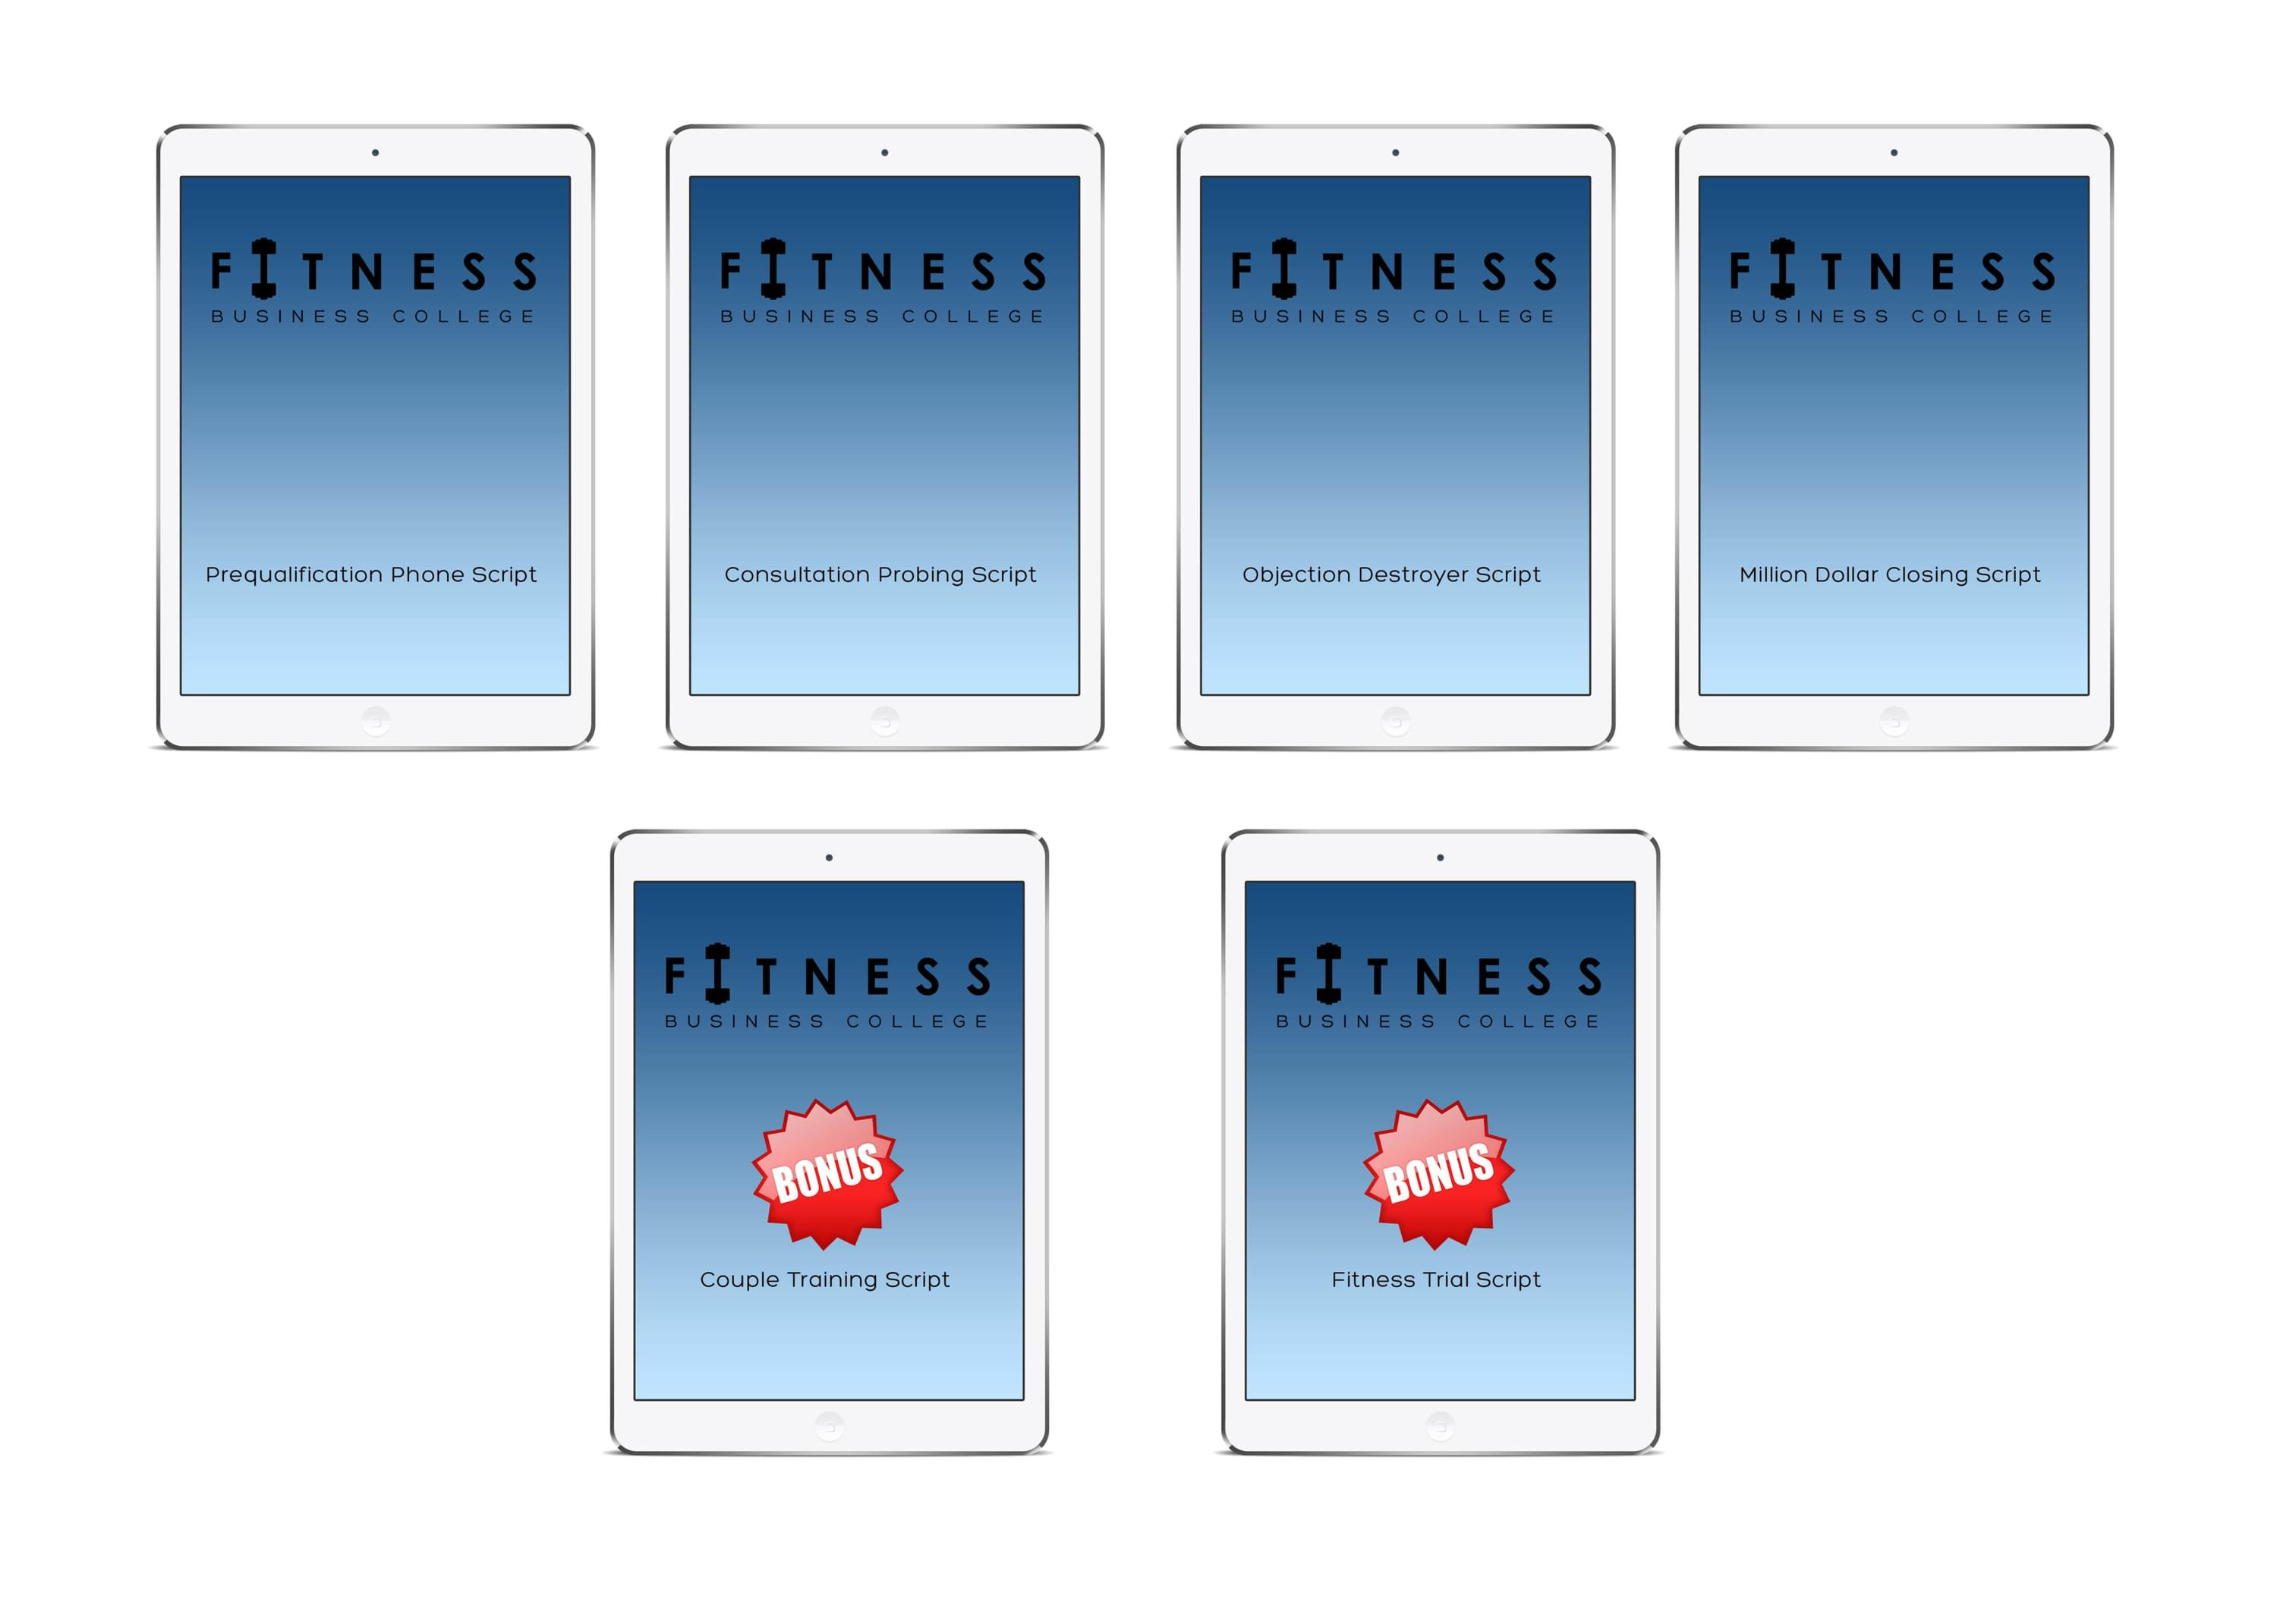 fitness-trainer-coaching-program-scripts